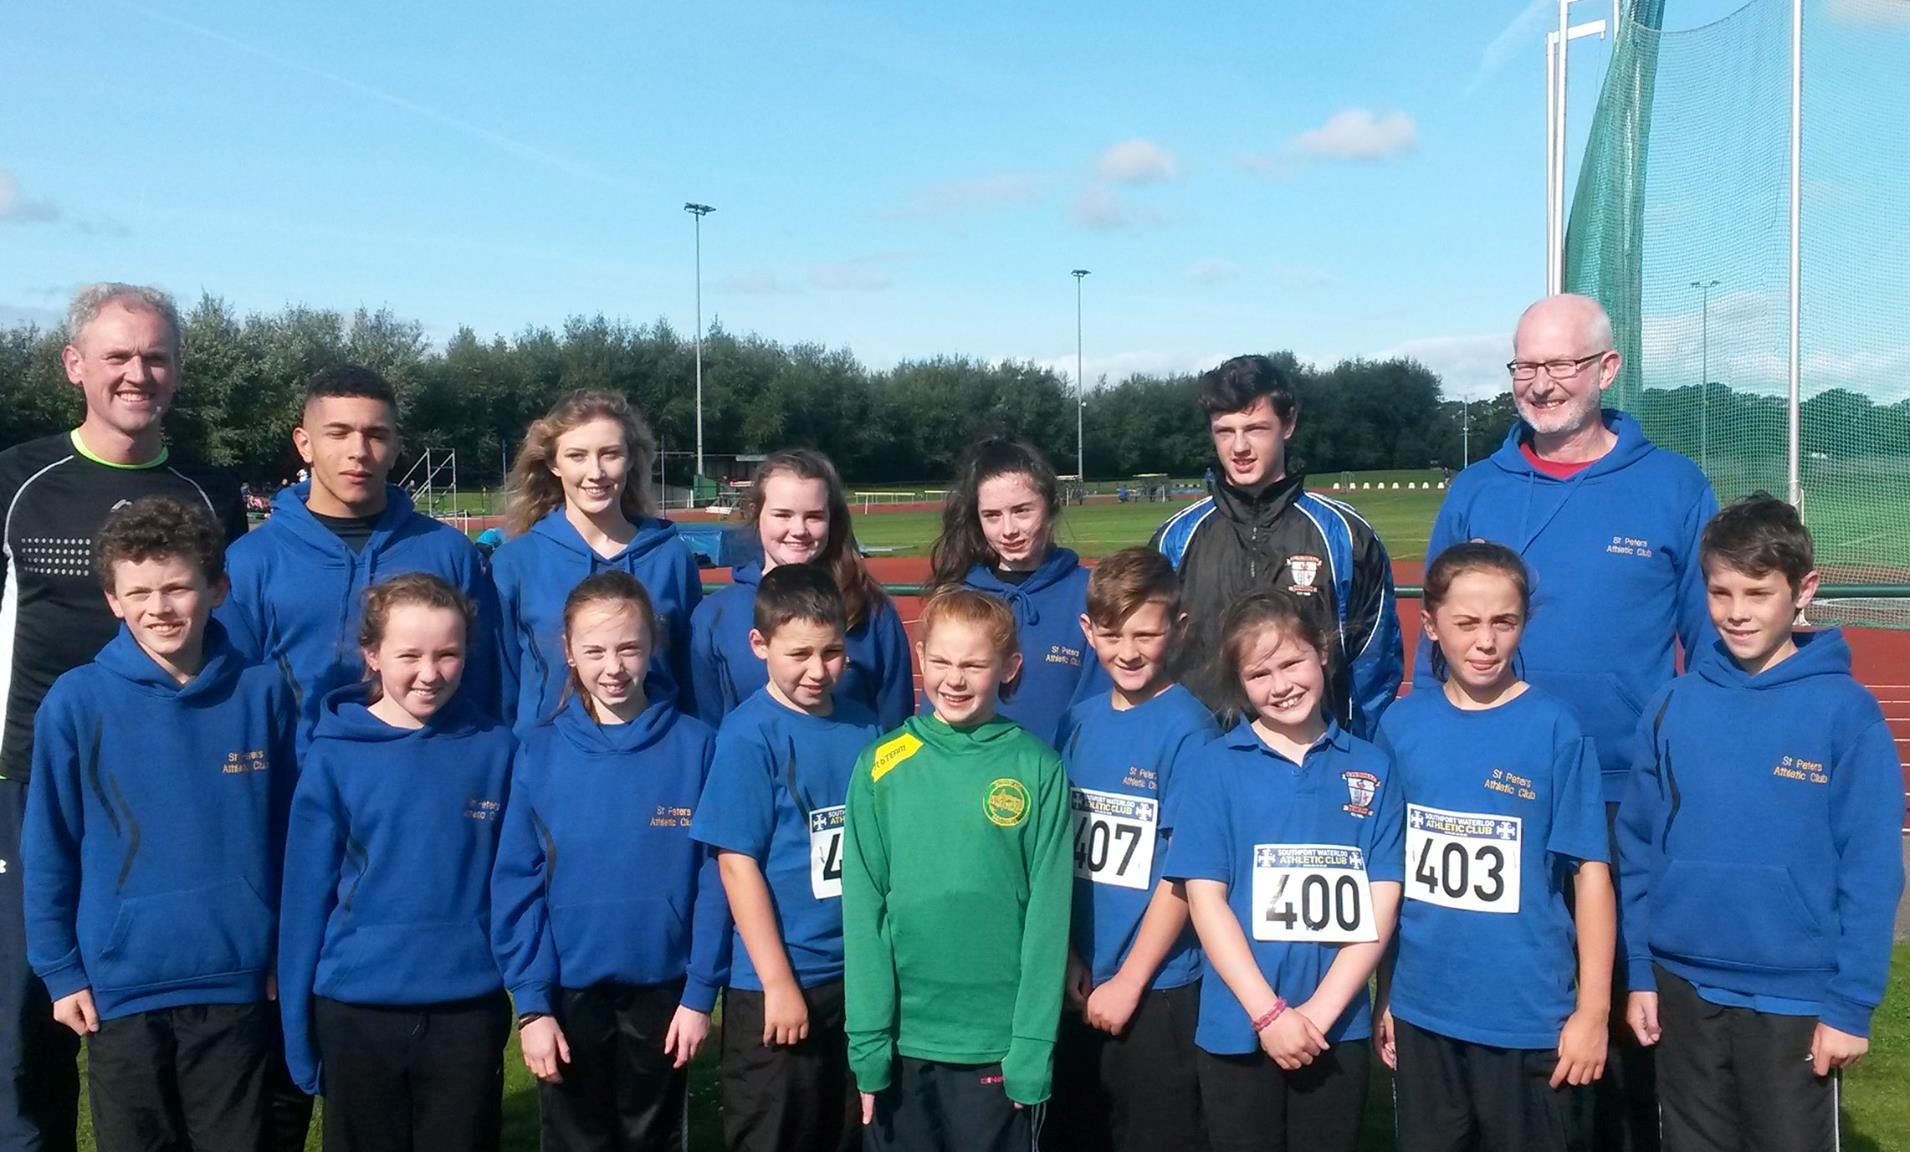 County Louth athletes at Southport Waterloo AC Open Meet (Liverpool, September 2015)